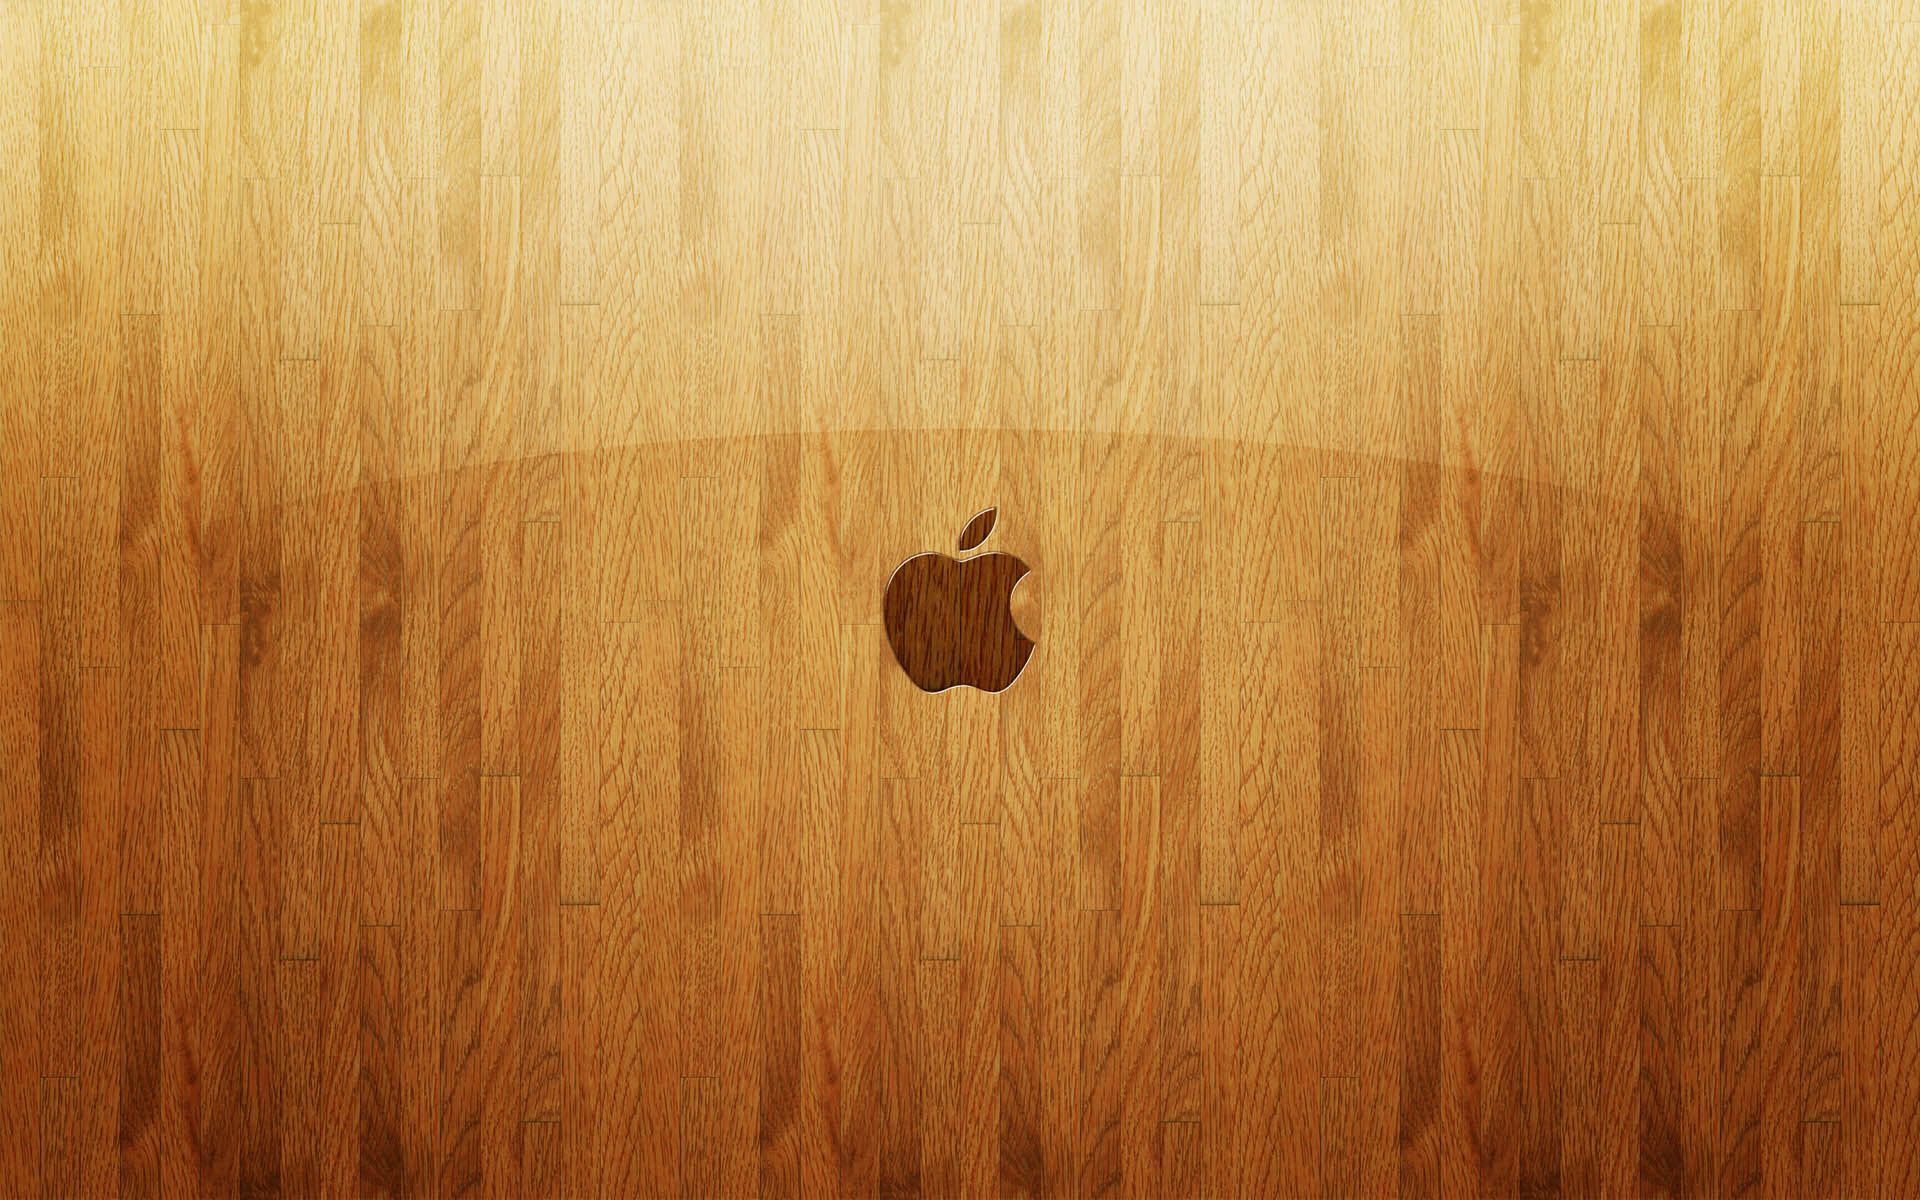 Hd wallpaper wood - Find This Pin And More On Hd Wallpapers